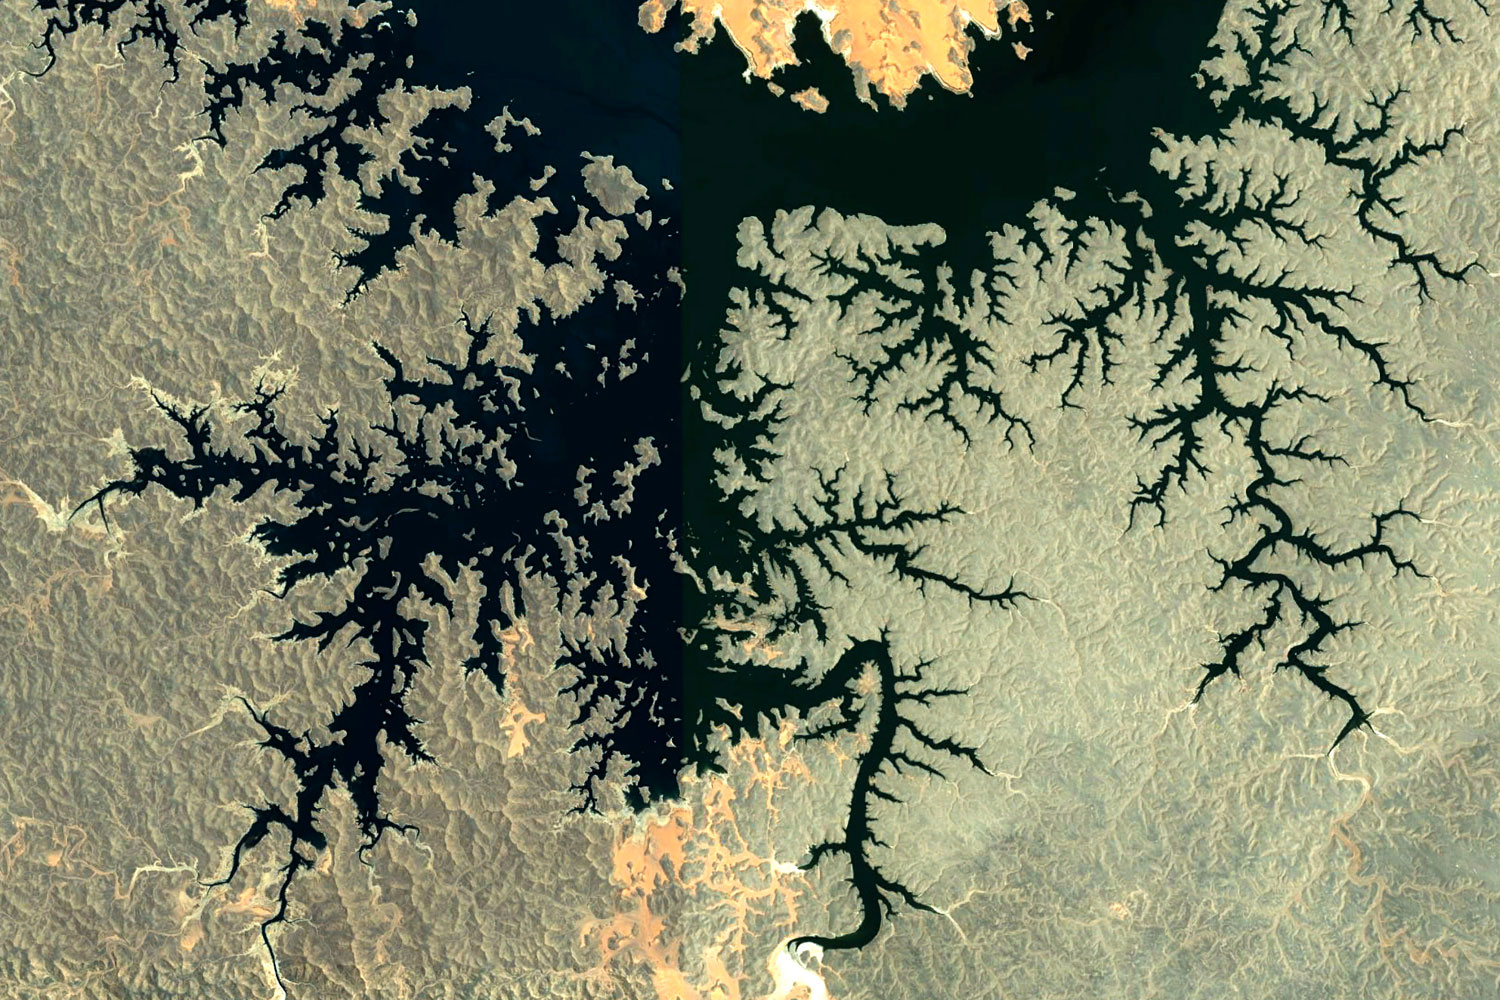 The images in this gallery of natural fractal patterns on earth, viewed from space, have been curated from Google Earth by professor Paul Bourke.                   Egypt